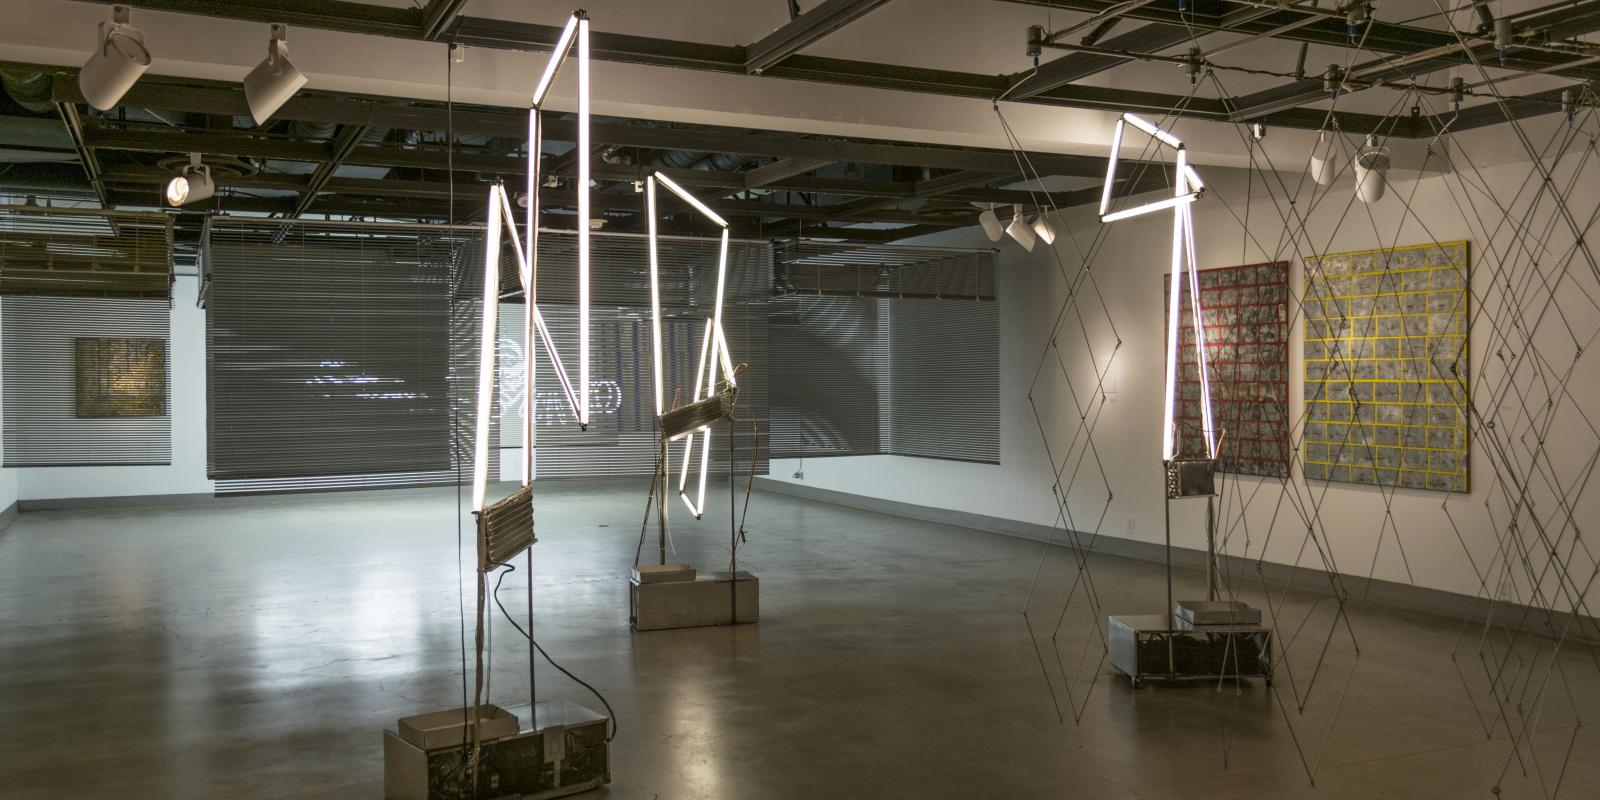 Back of the gallery, Exhibition: David Jang: Systems of Production, Feb 22 - Apr 26, 2018, Curator: Michele Cairella Fillmore, W. Keith & Janet Kellogg Art Gallery, Cal Poly Pomona. [Gallery Shot showing 3 of David Jang's Most dynamic works]